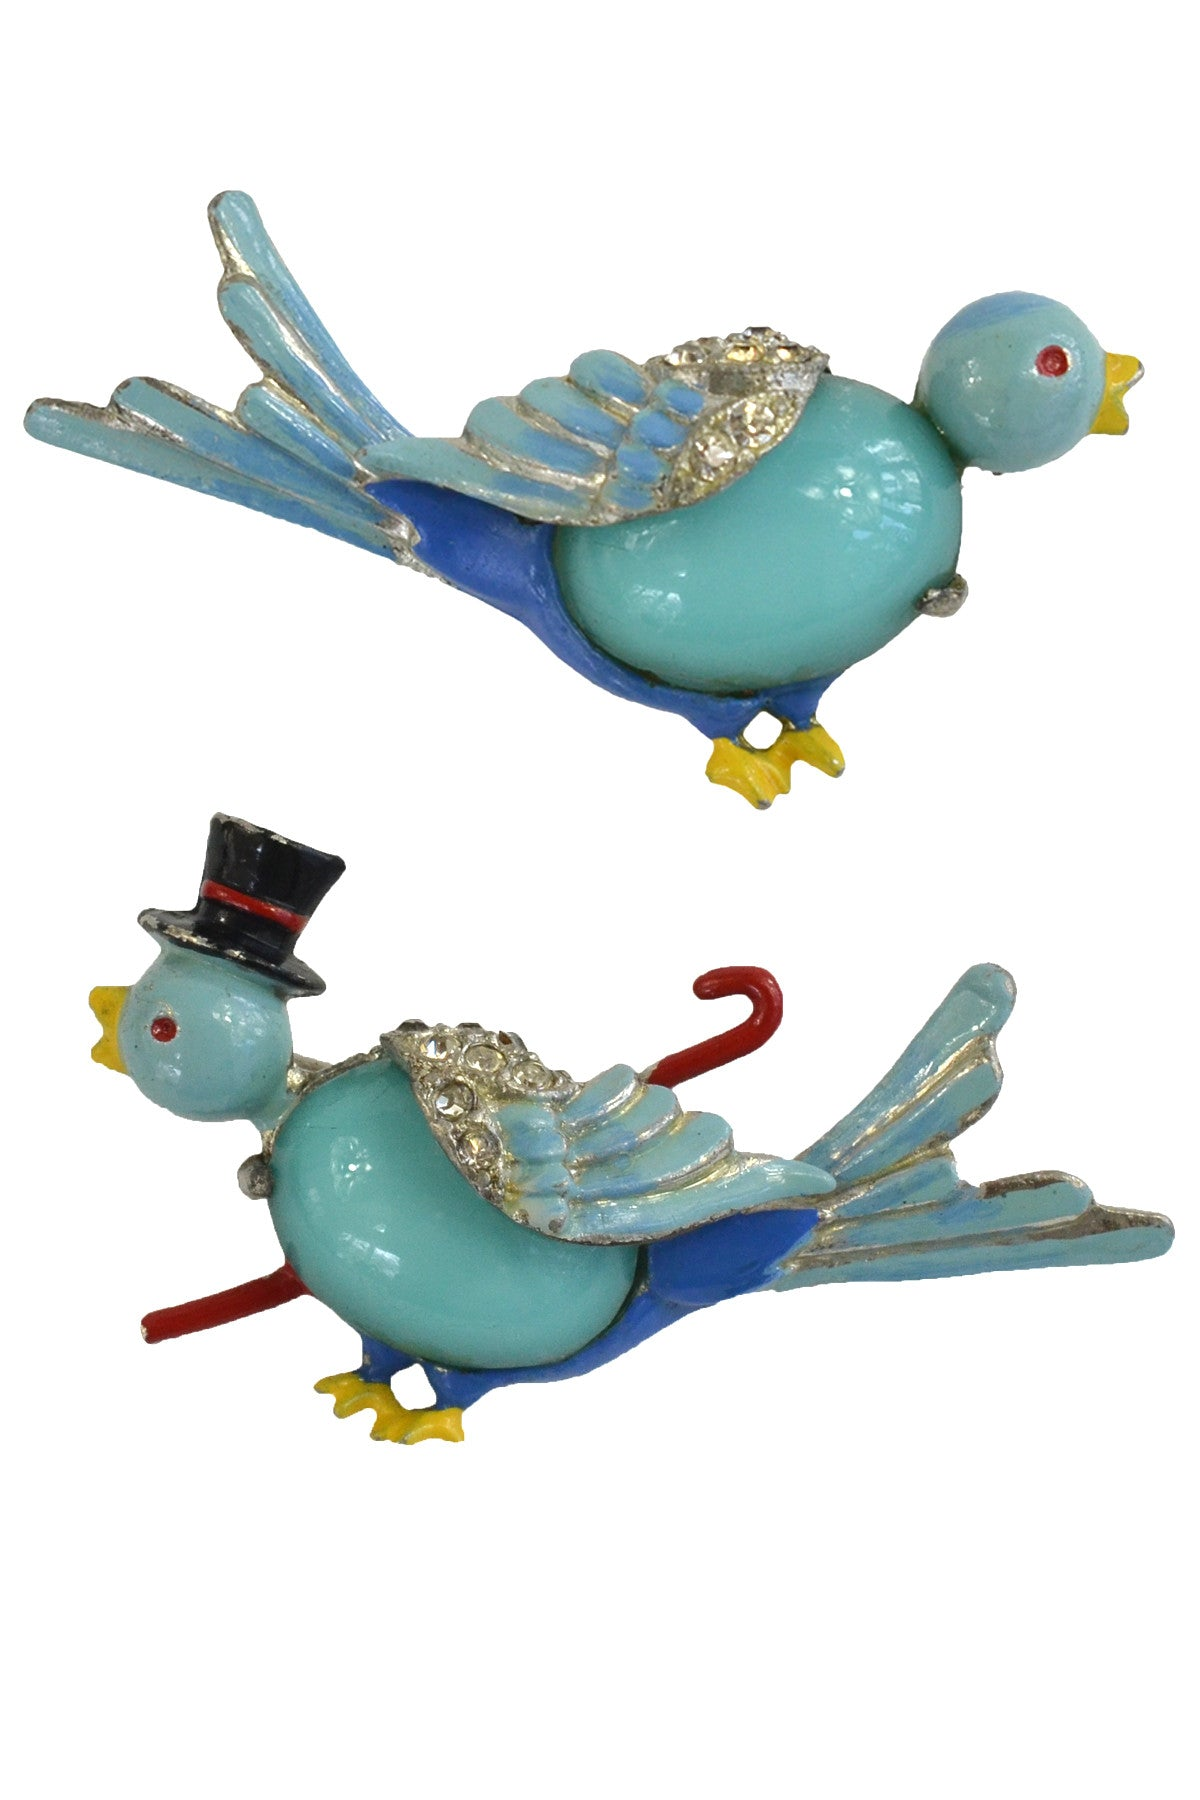 1941 Gene Verrecchio Coro unsigned Mr. and Mrs. Bluebird Pins Brooch